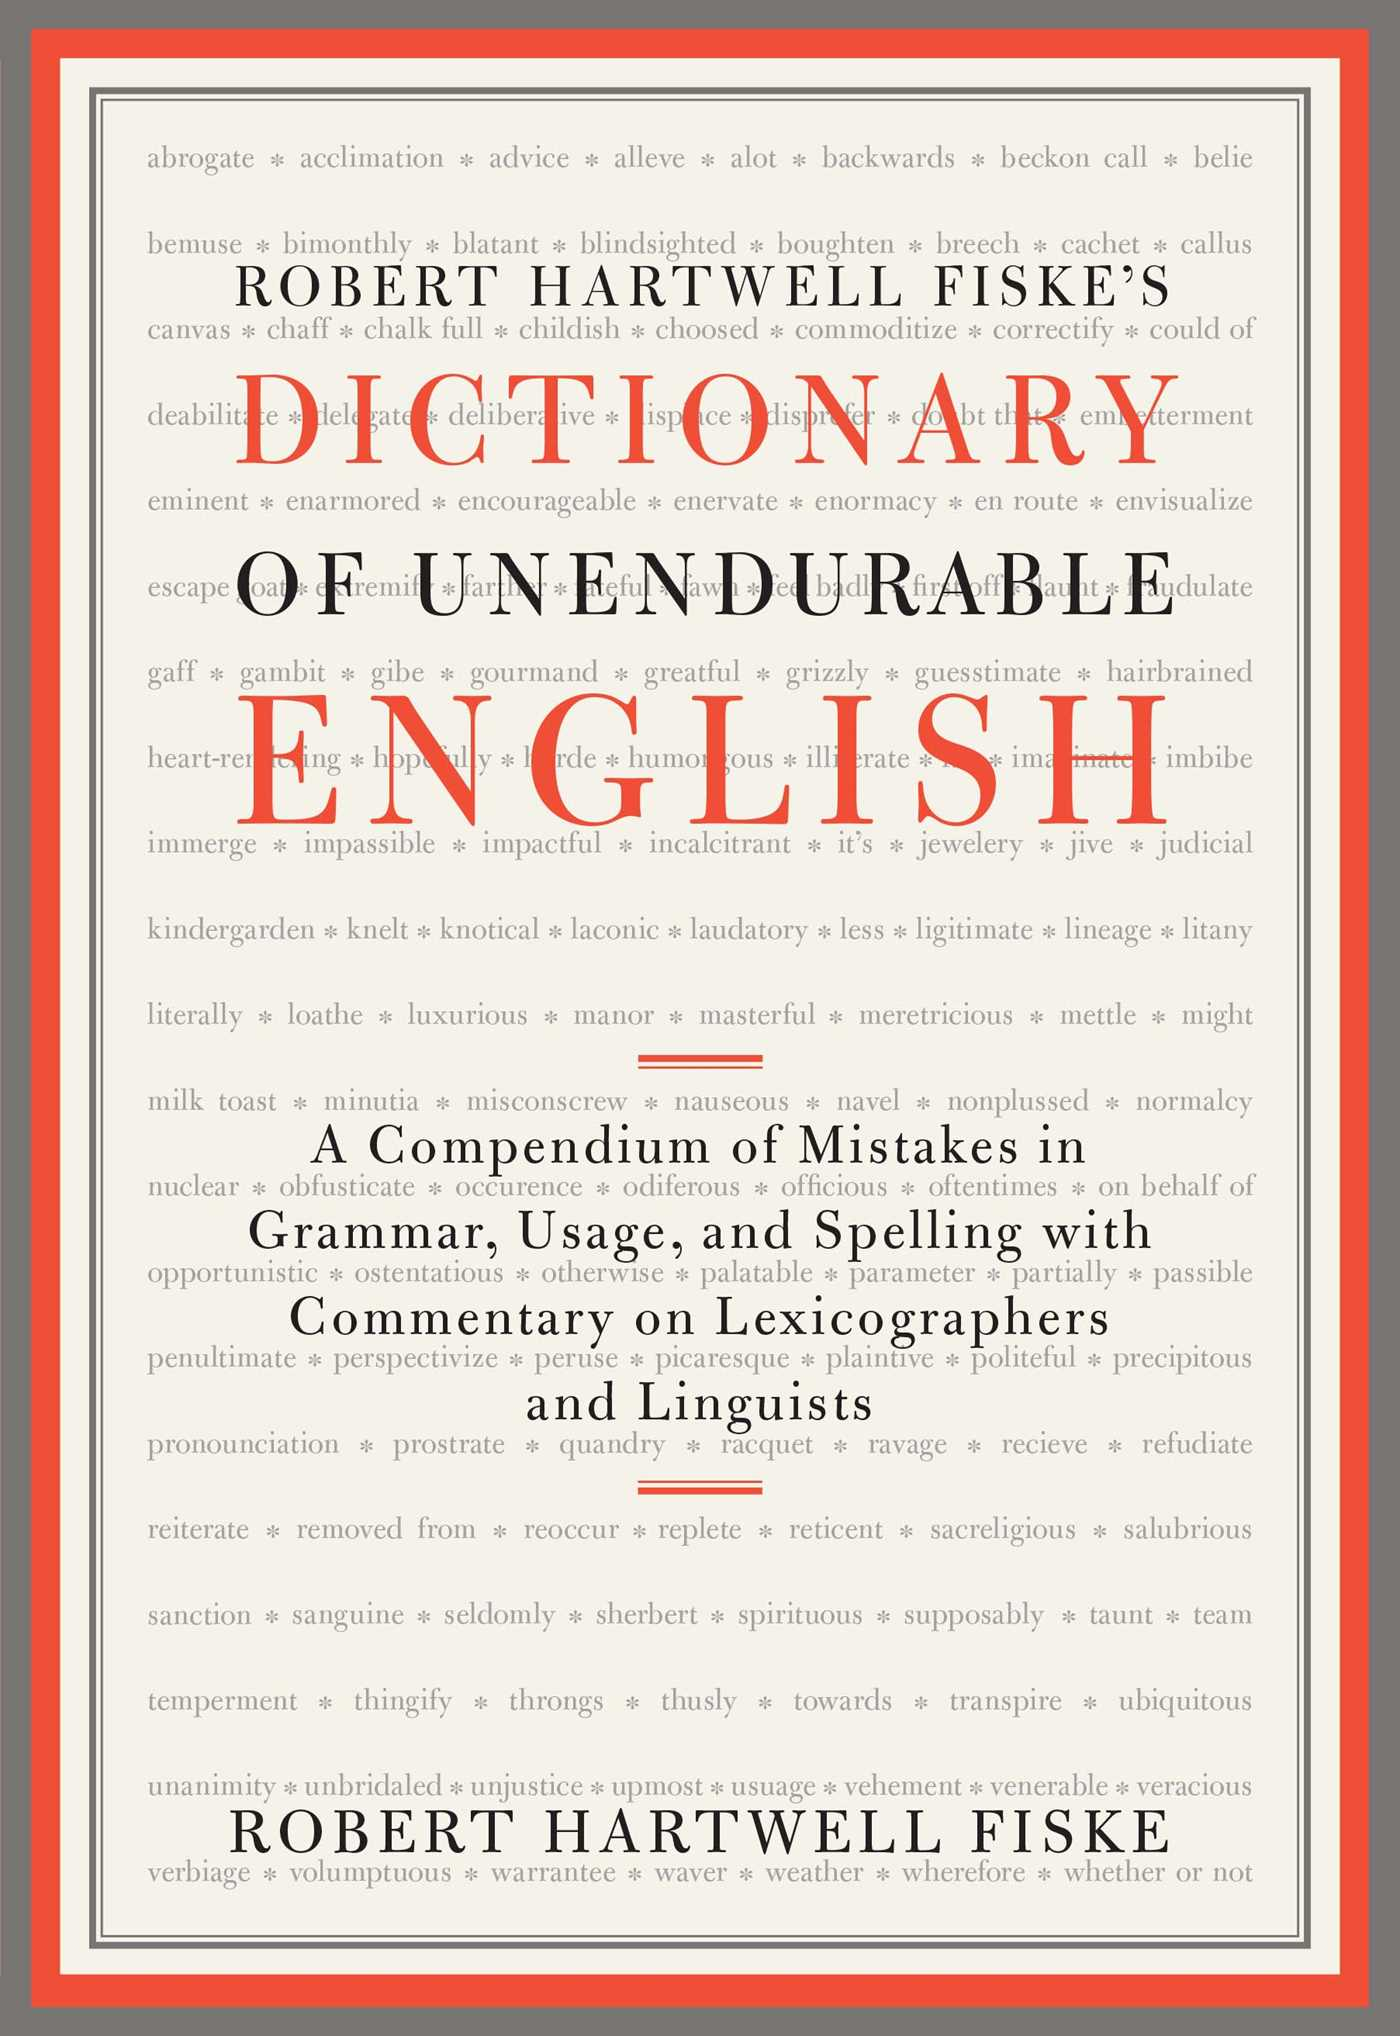 Robert hartwell fiskes dictionary of unendurable english 9781451651324 hr